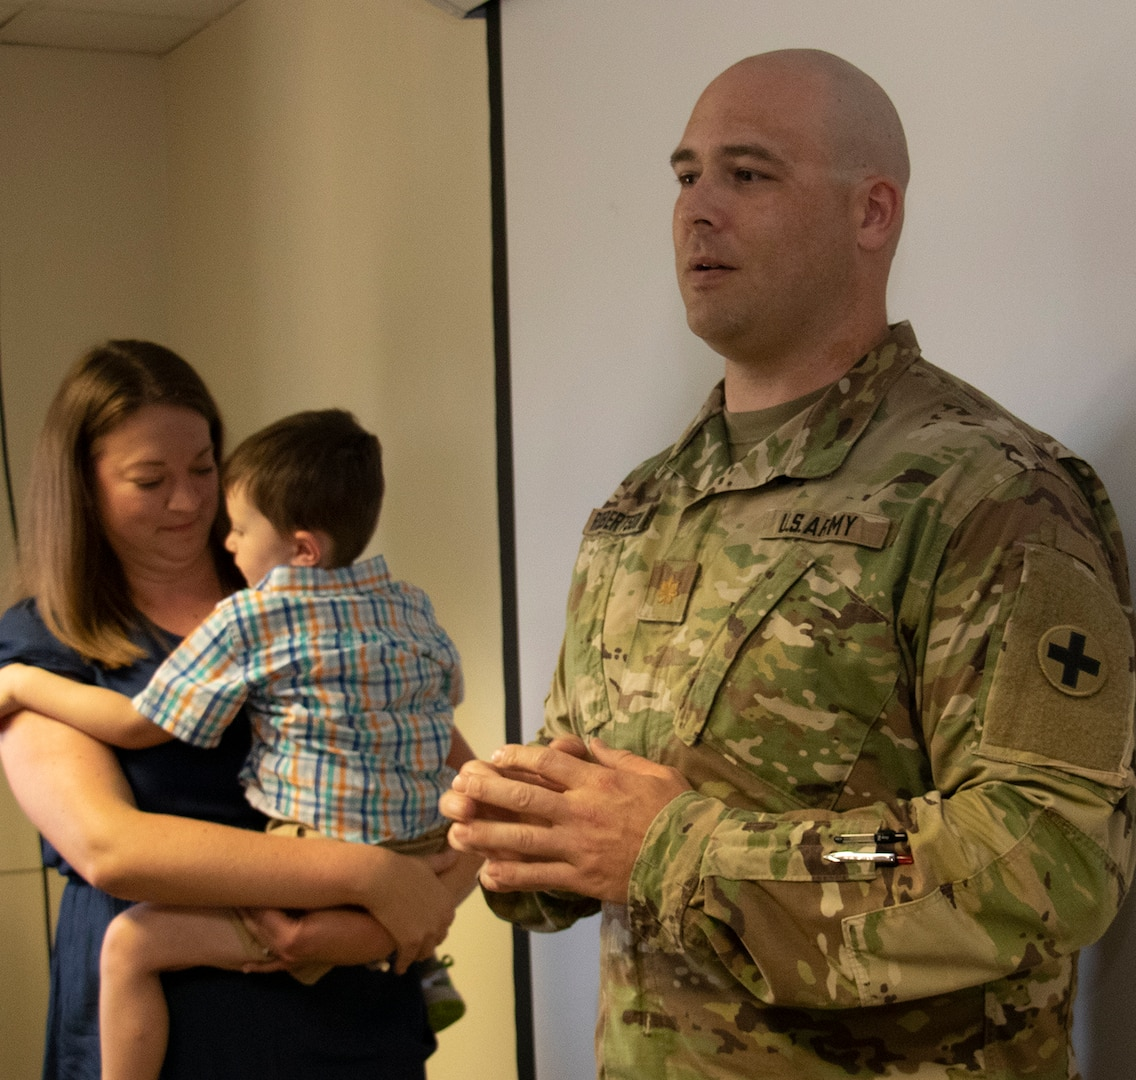 Newly promoted Maj. Shawn Robertson, joined by wife, Sarah, and son, Reid, addresses friends attending his promotion ceremony, Aug. 23.